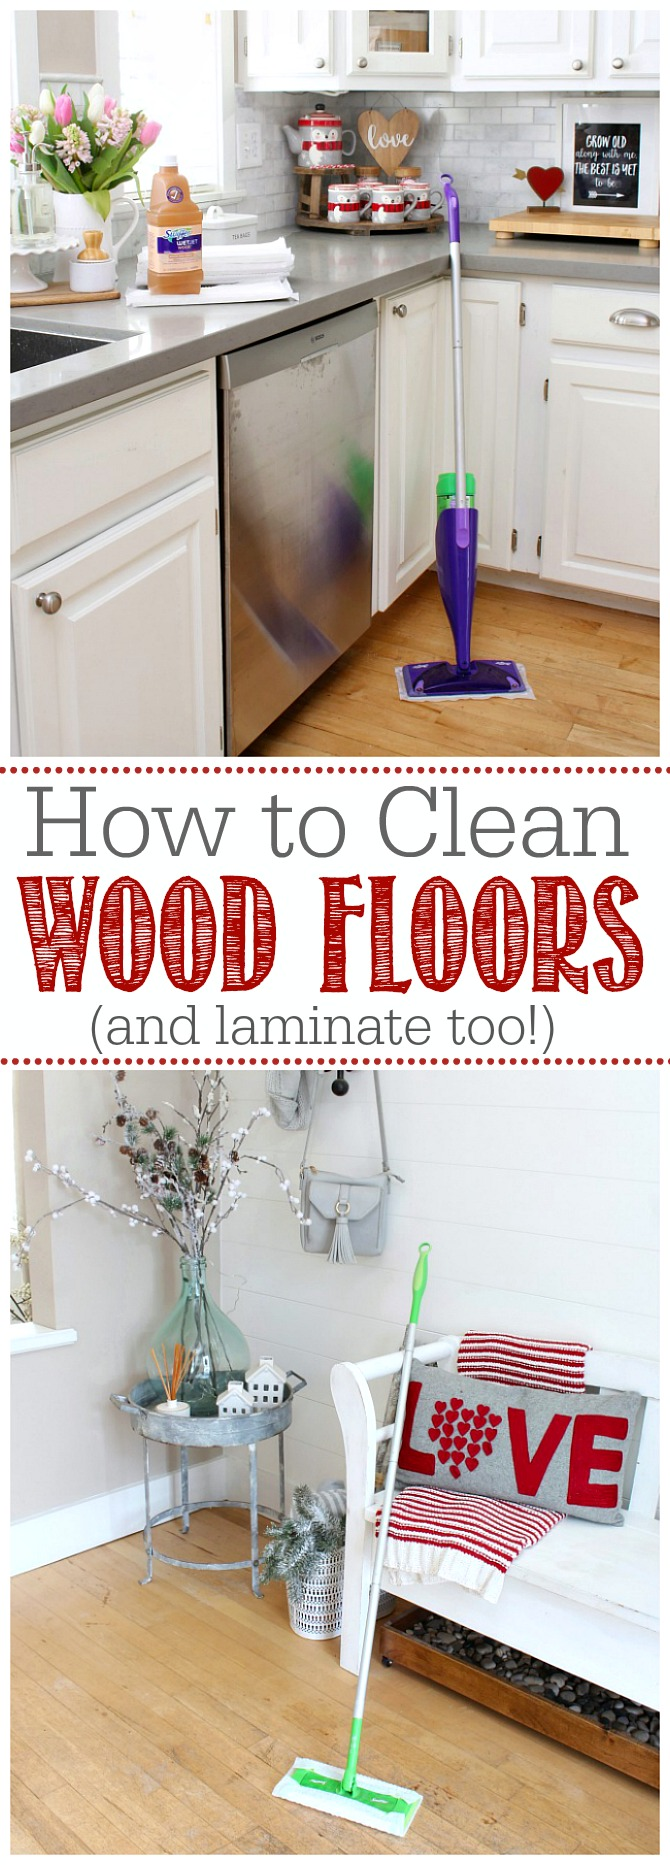 How to clean wood floors .  Wood flooring in a front entry and kitchen with Swiffer products.